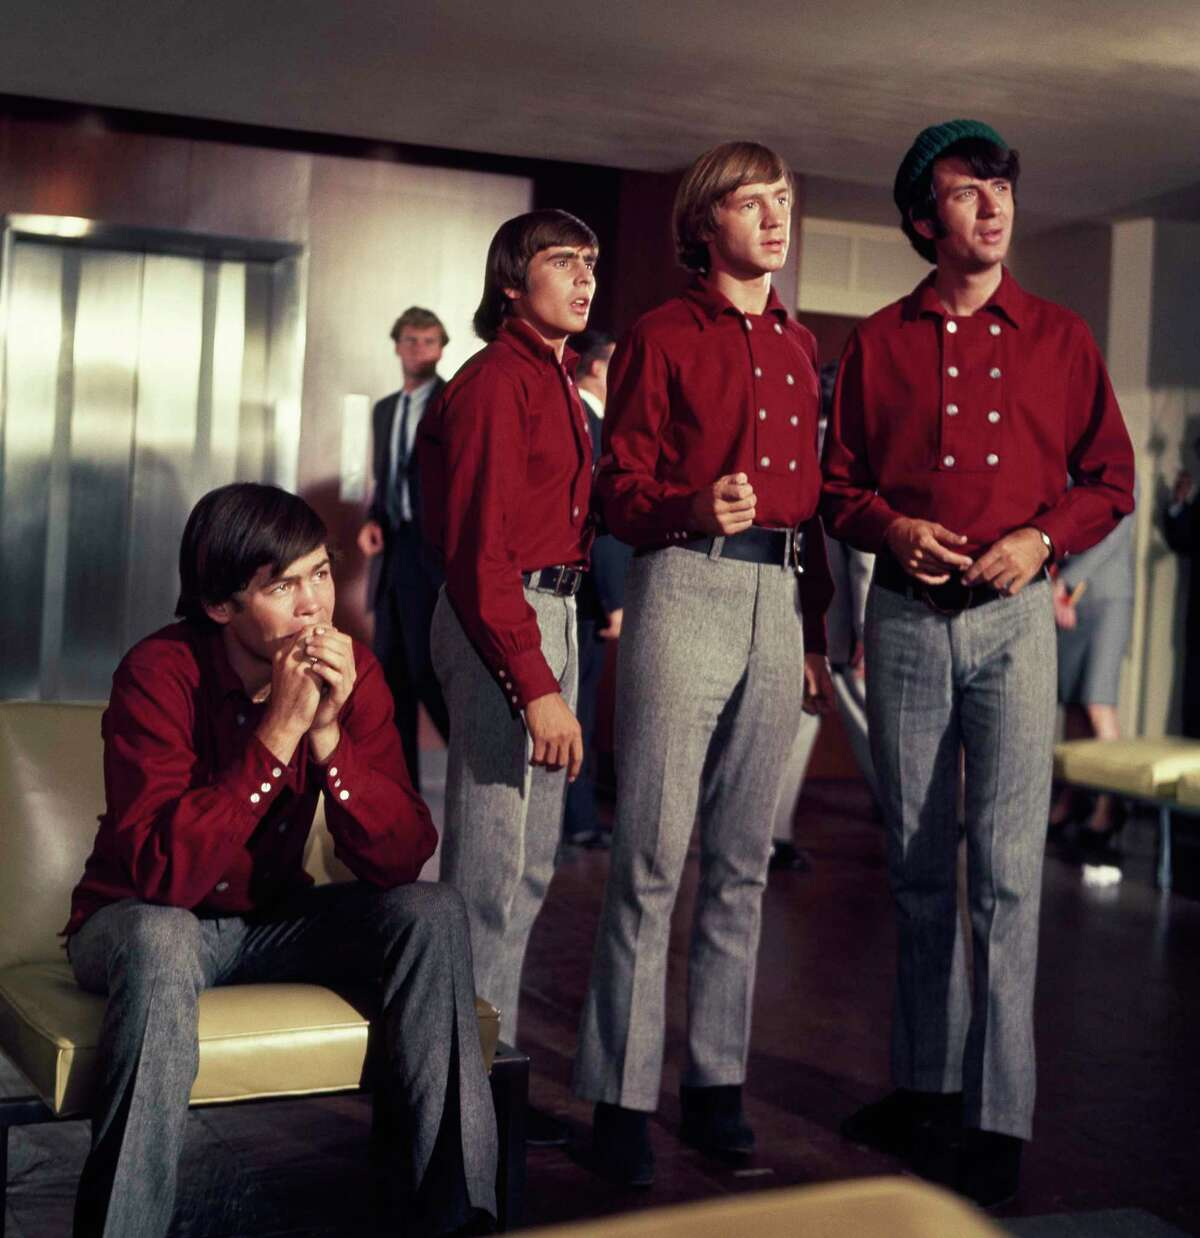 From left, Micky Dolenz, Davy Jones, Peter Tork and Michael Nesmith in the 1960s NBC TV show.